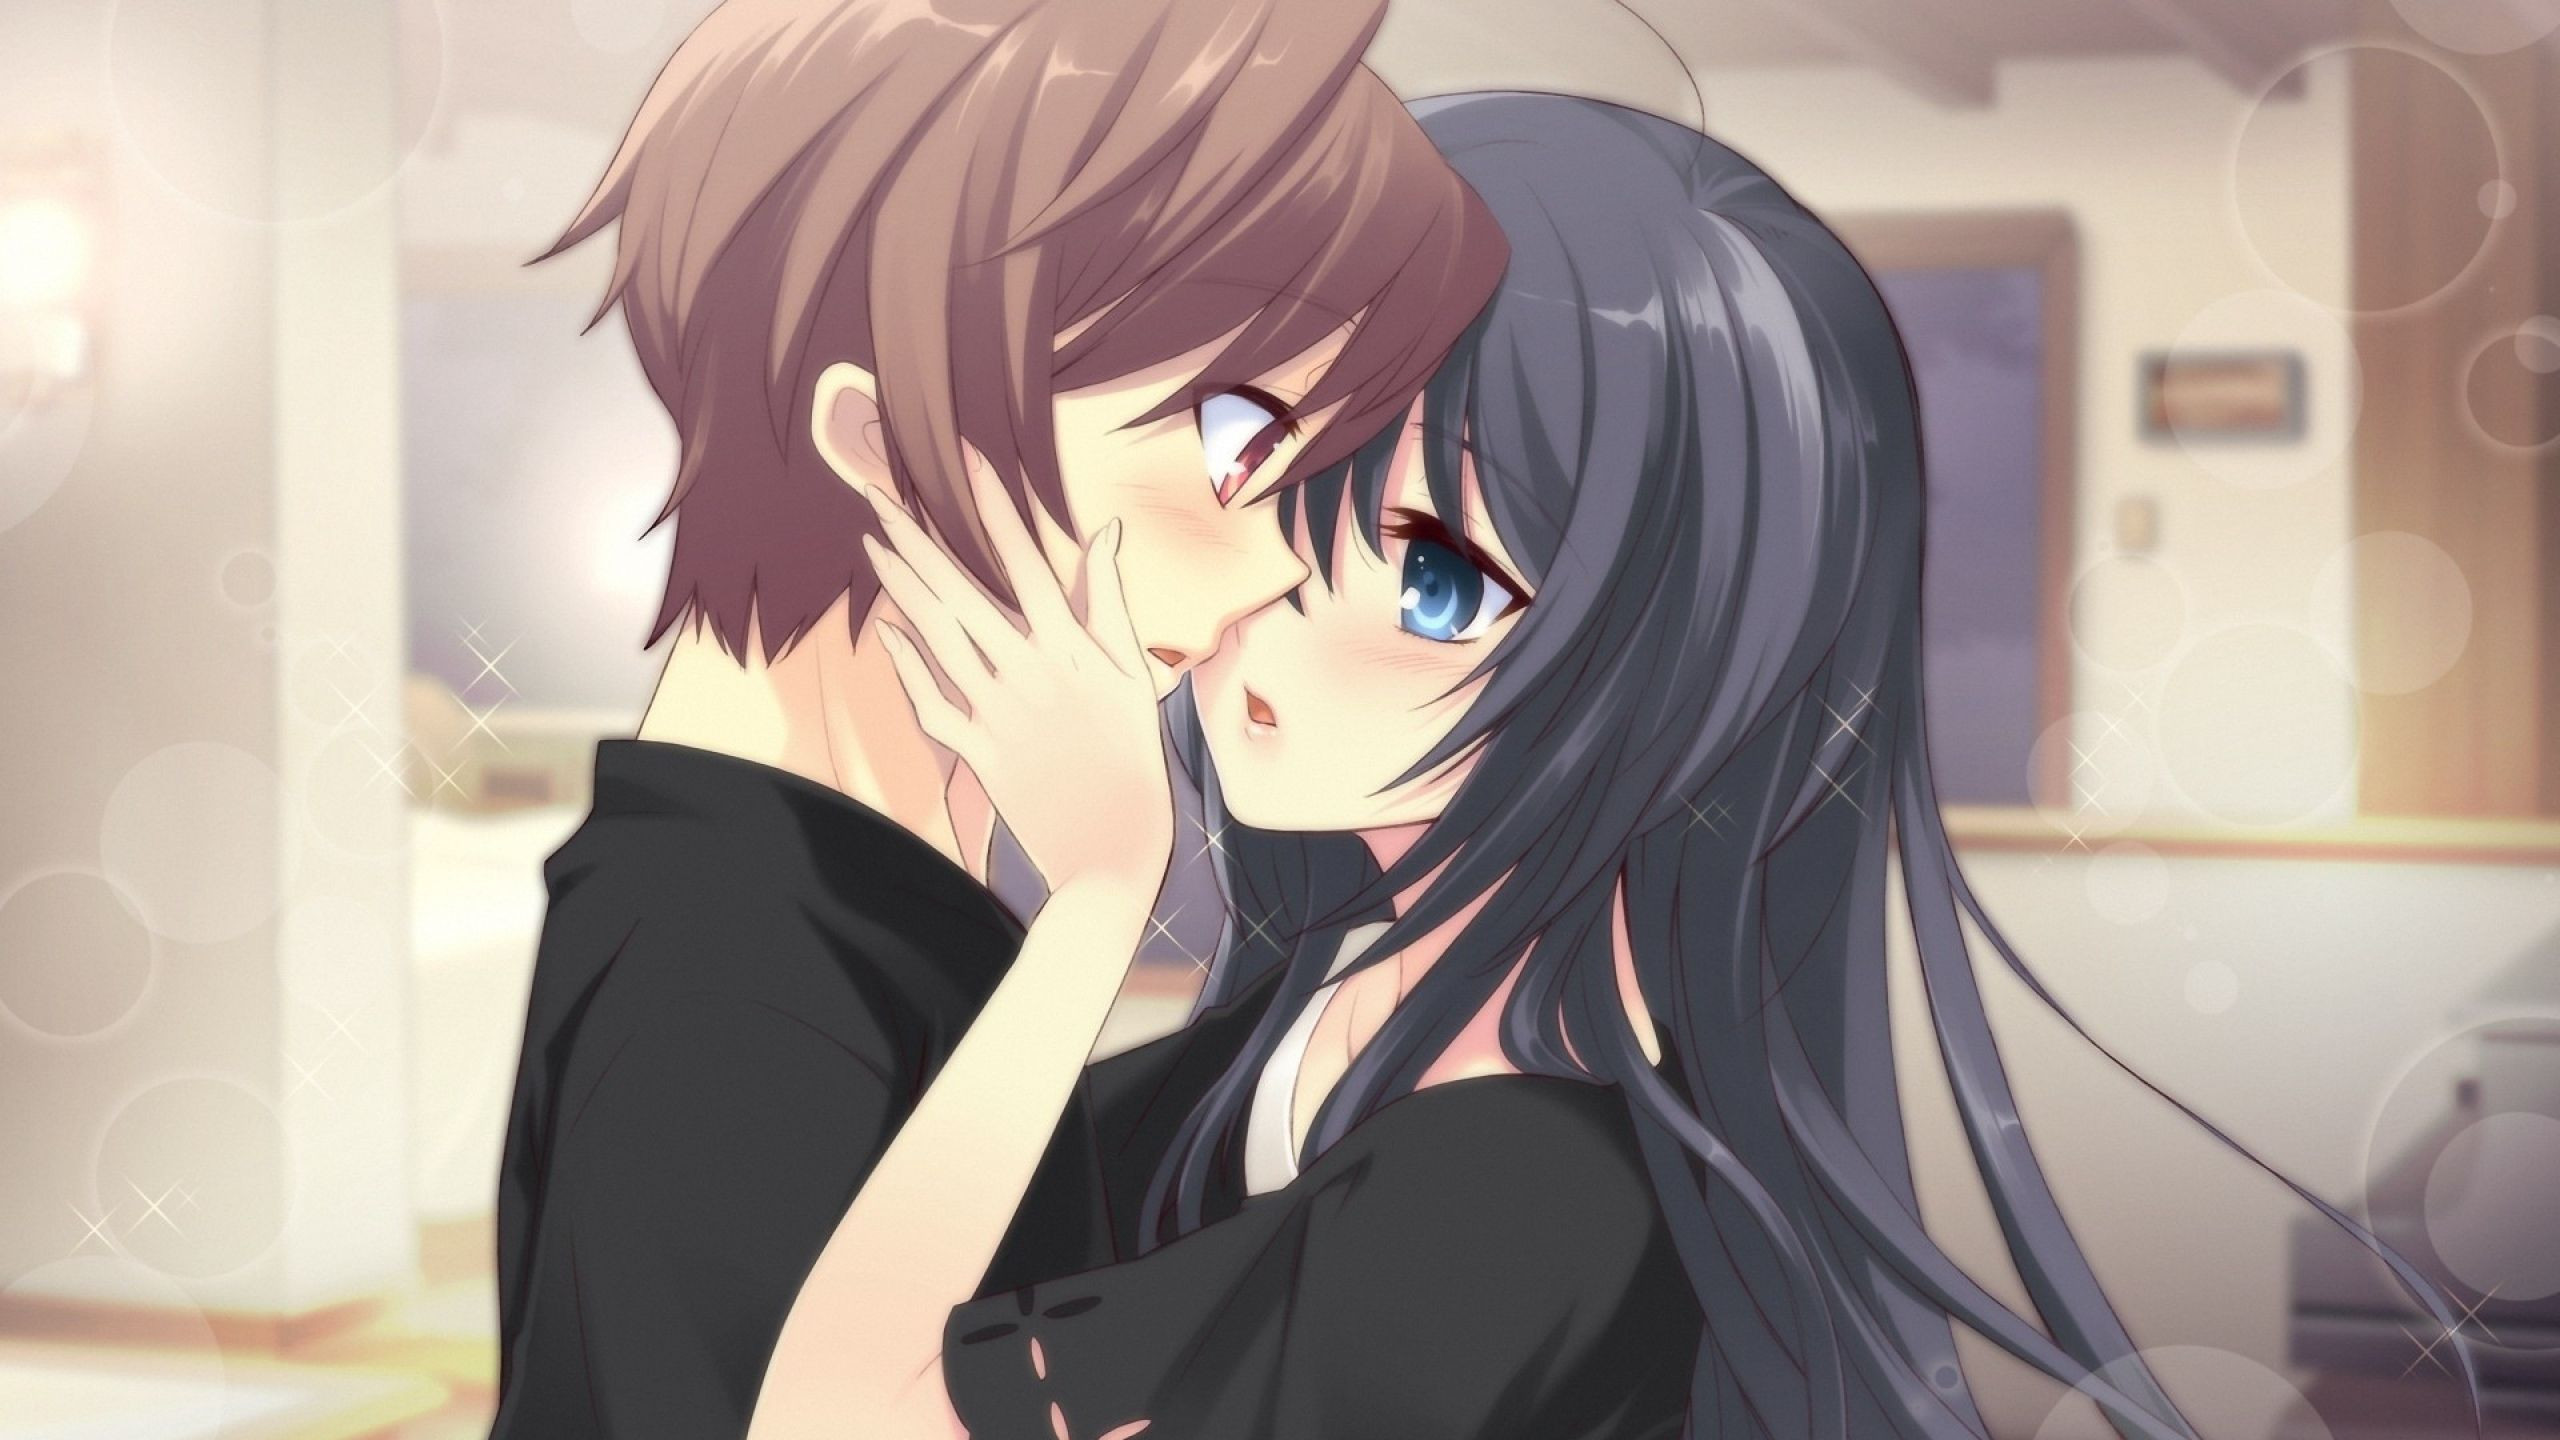 Res: 2560x1440, ...  Cute Anime Couples Wallpaper Cute Anime Couple Wallpapers